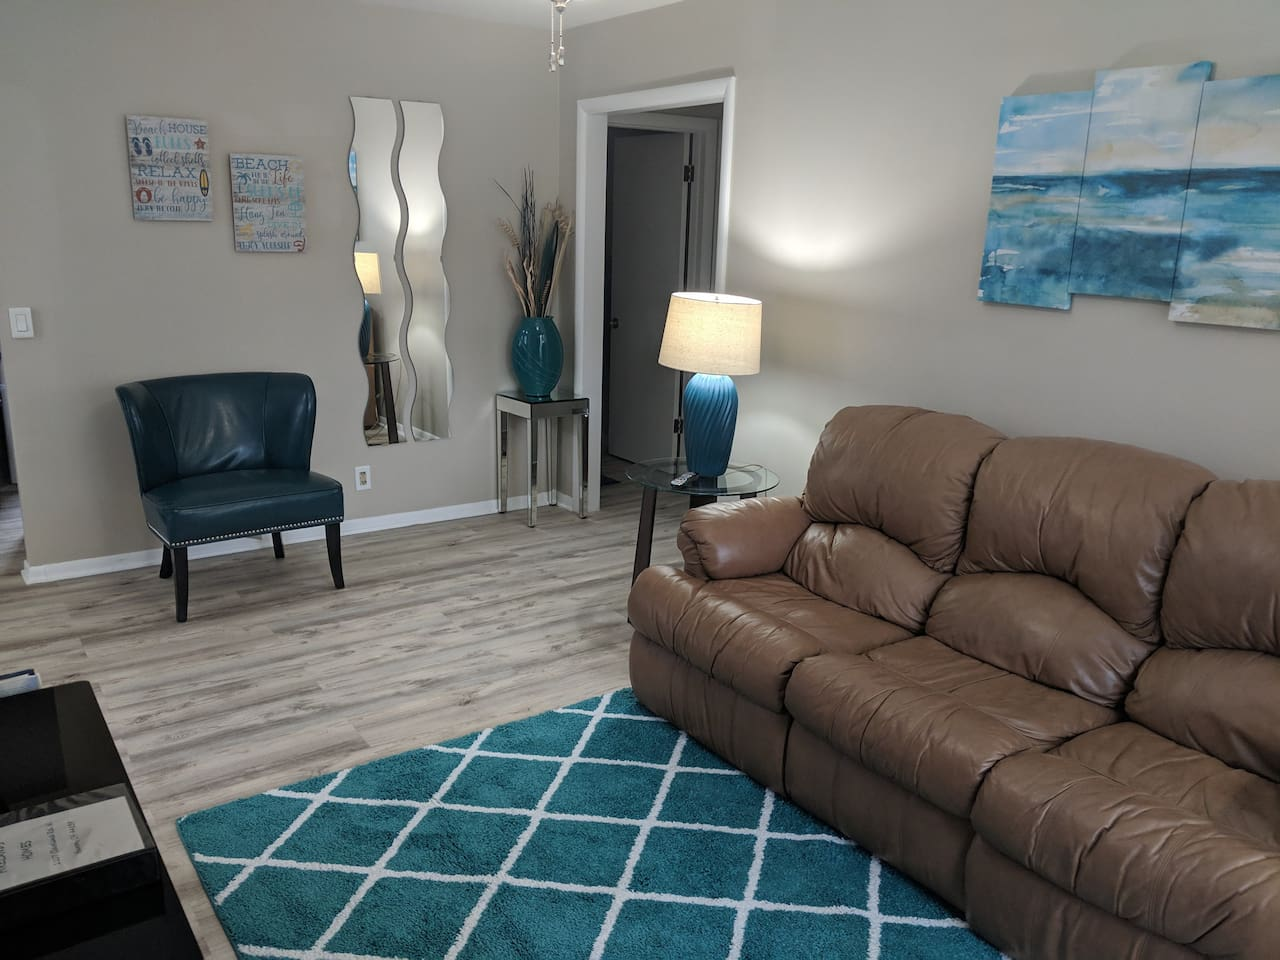 An leather couch and dark teal chair help make the living room inviting.